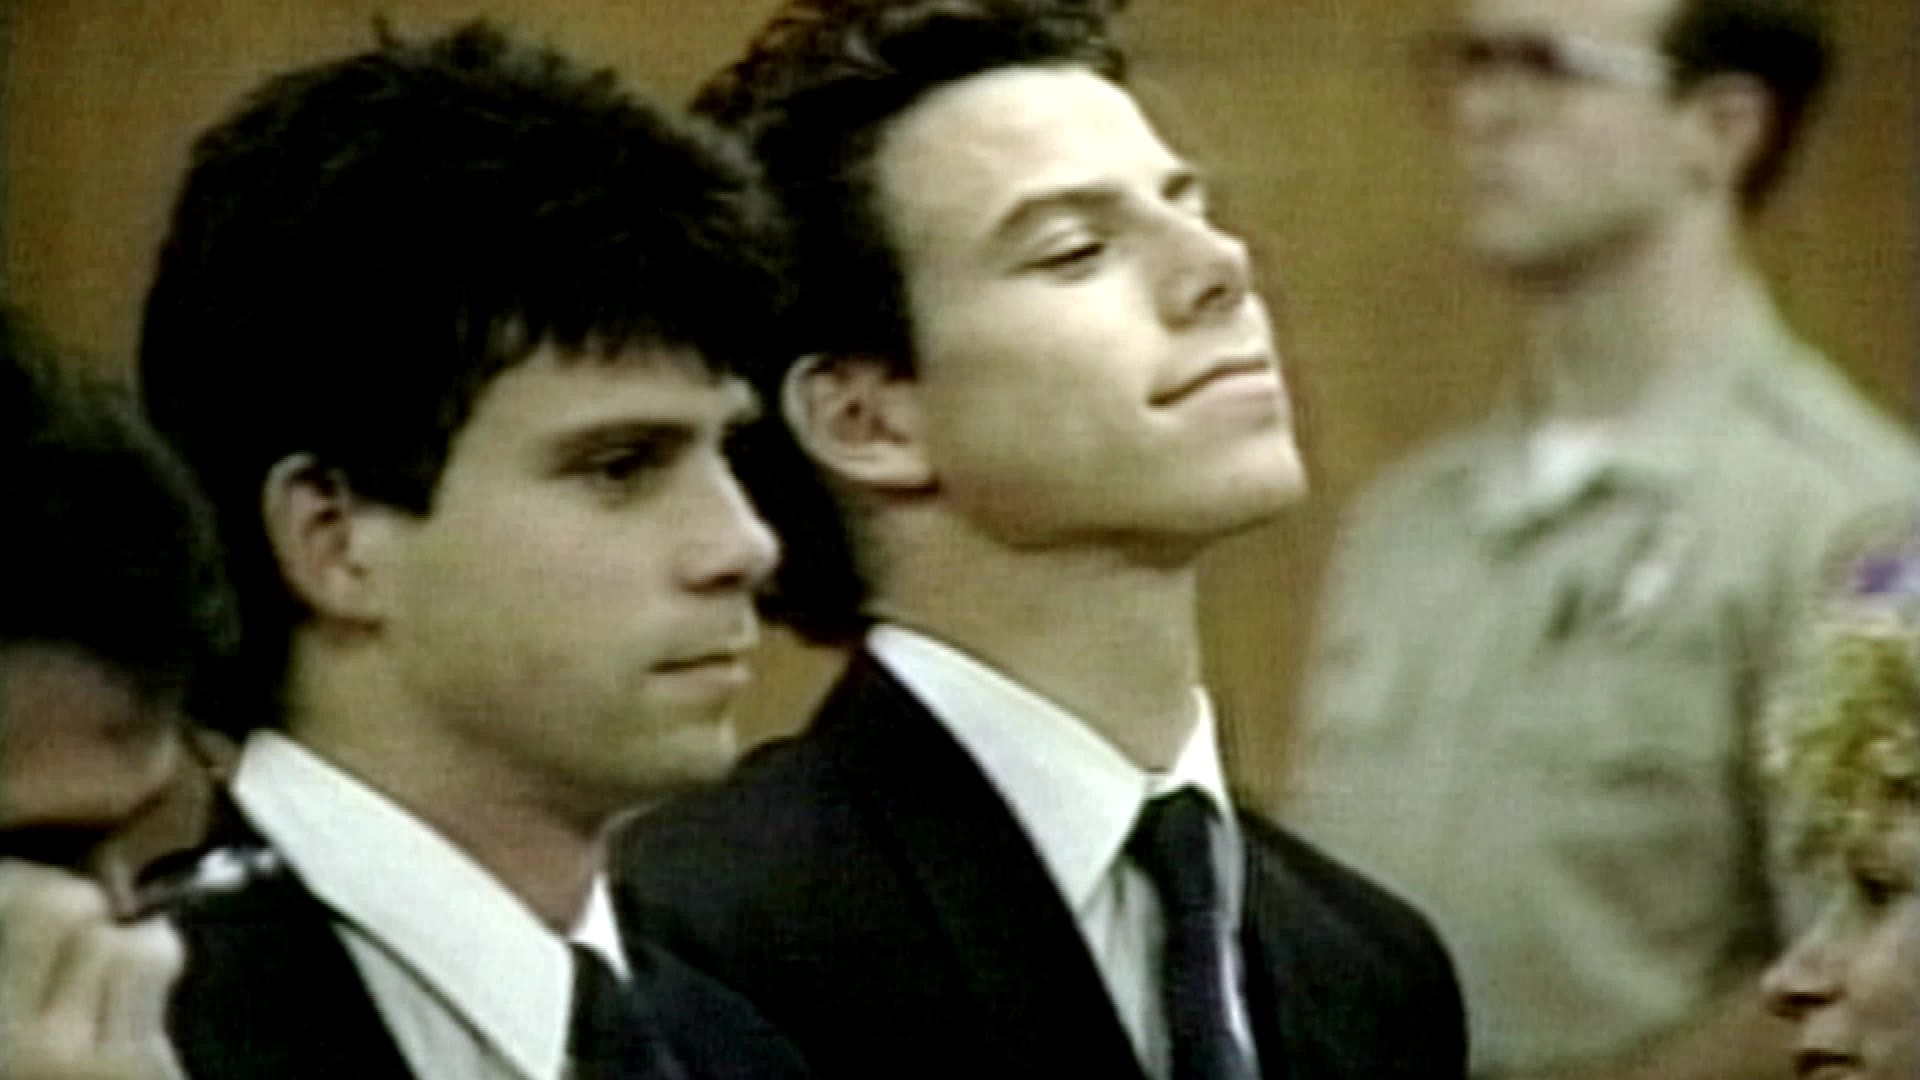 an overview of the lives of the menendez brothers convicted for murder Erik and lyle menendez, two brothers who grew up in were convicted of murdering their parents jose and louise linking the two brothers to the murder.